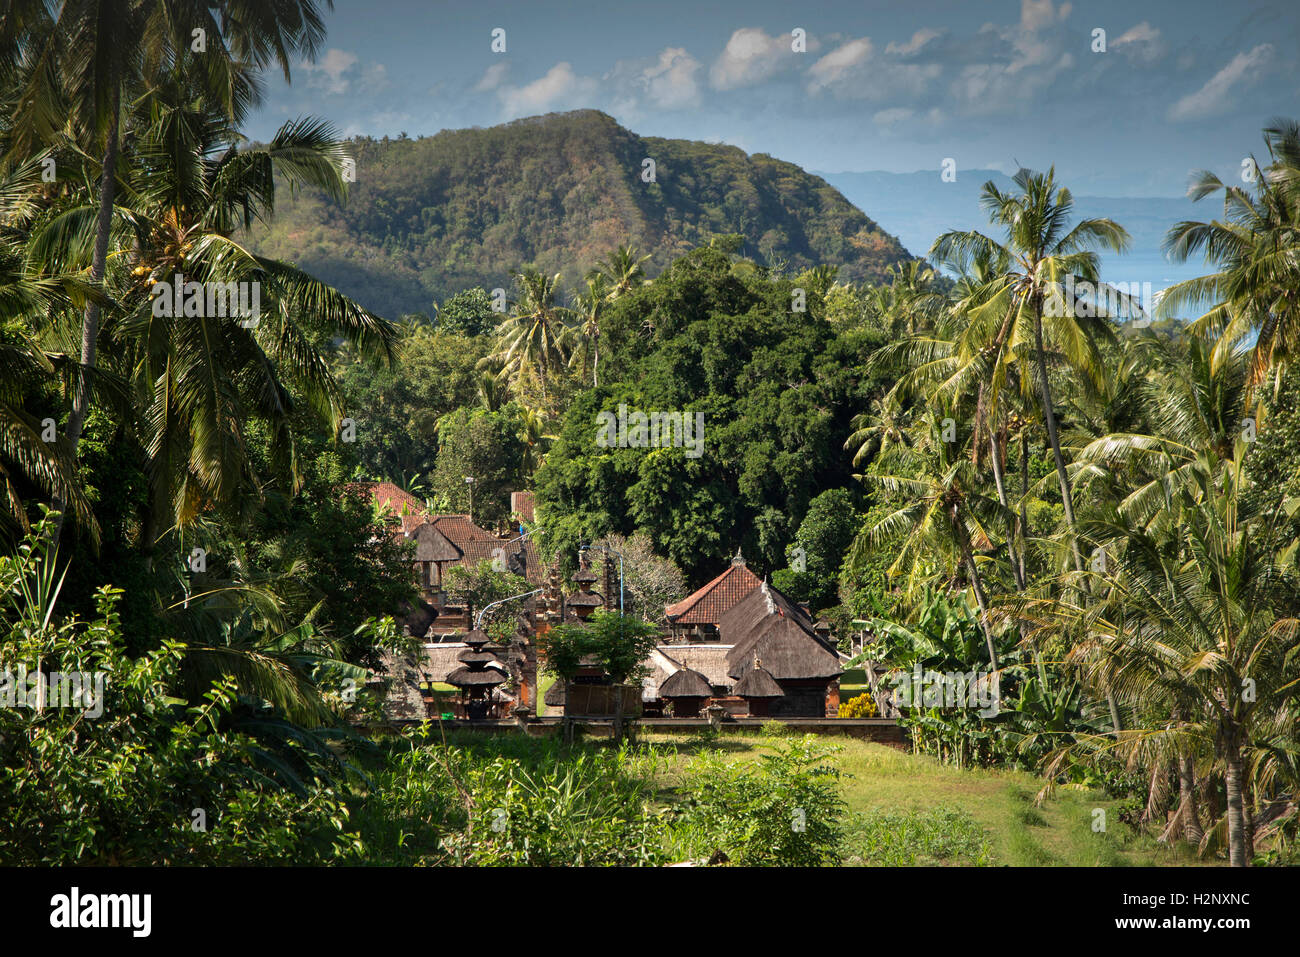 Indonesia, Bali, Manggis, elevated view of hillside temple from Bukit Telengan - Stock Image